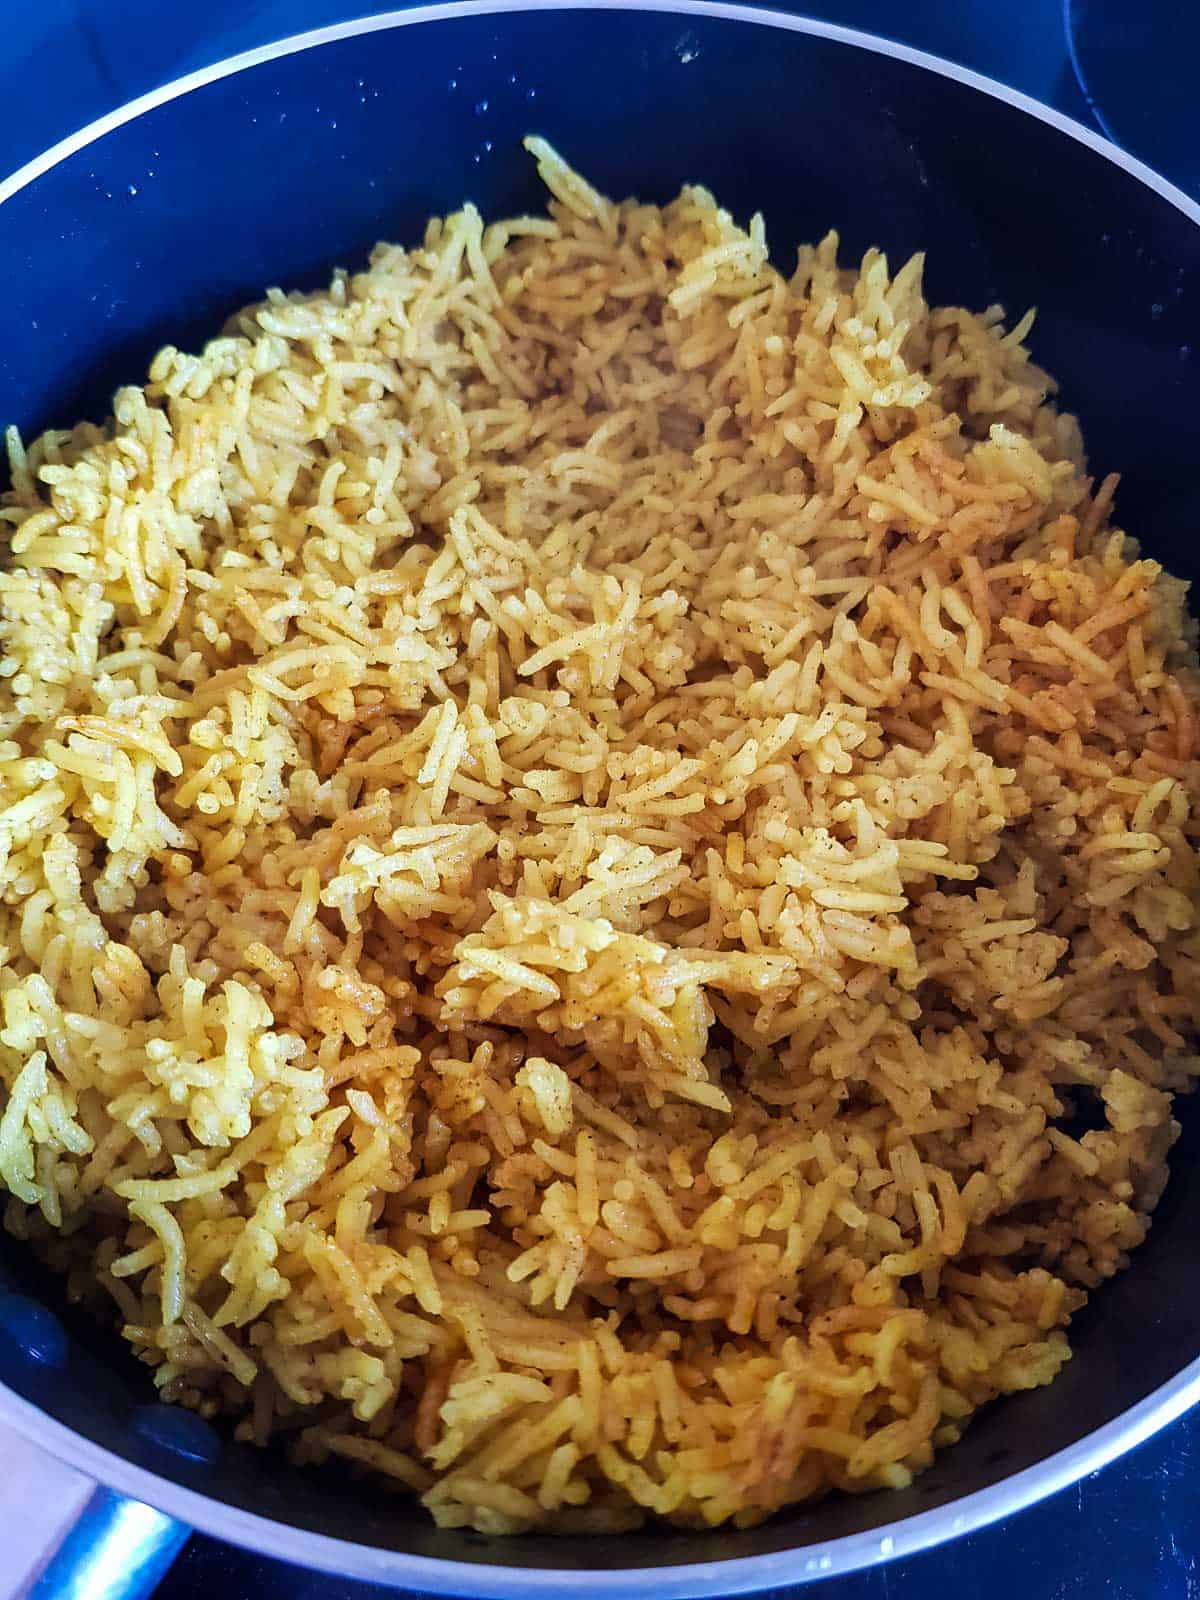 Cooked turmeric rice in a pot.